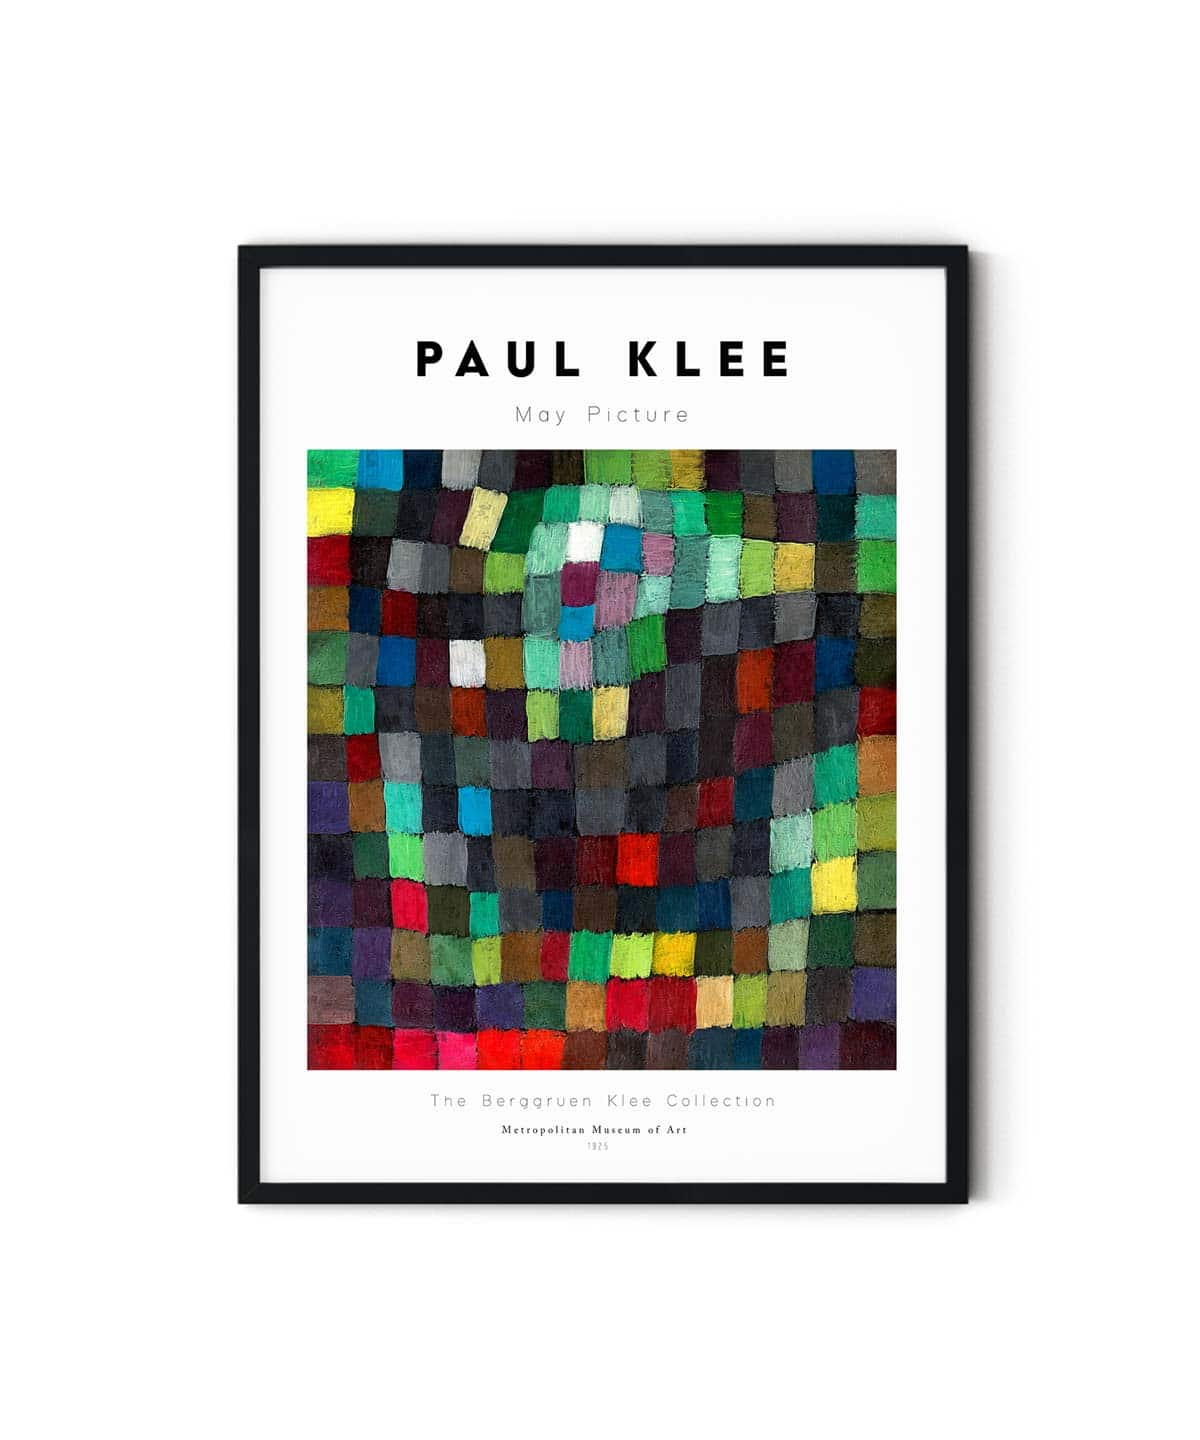 Paul-Klee-May-Picture-Poster-Duwart